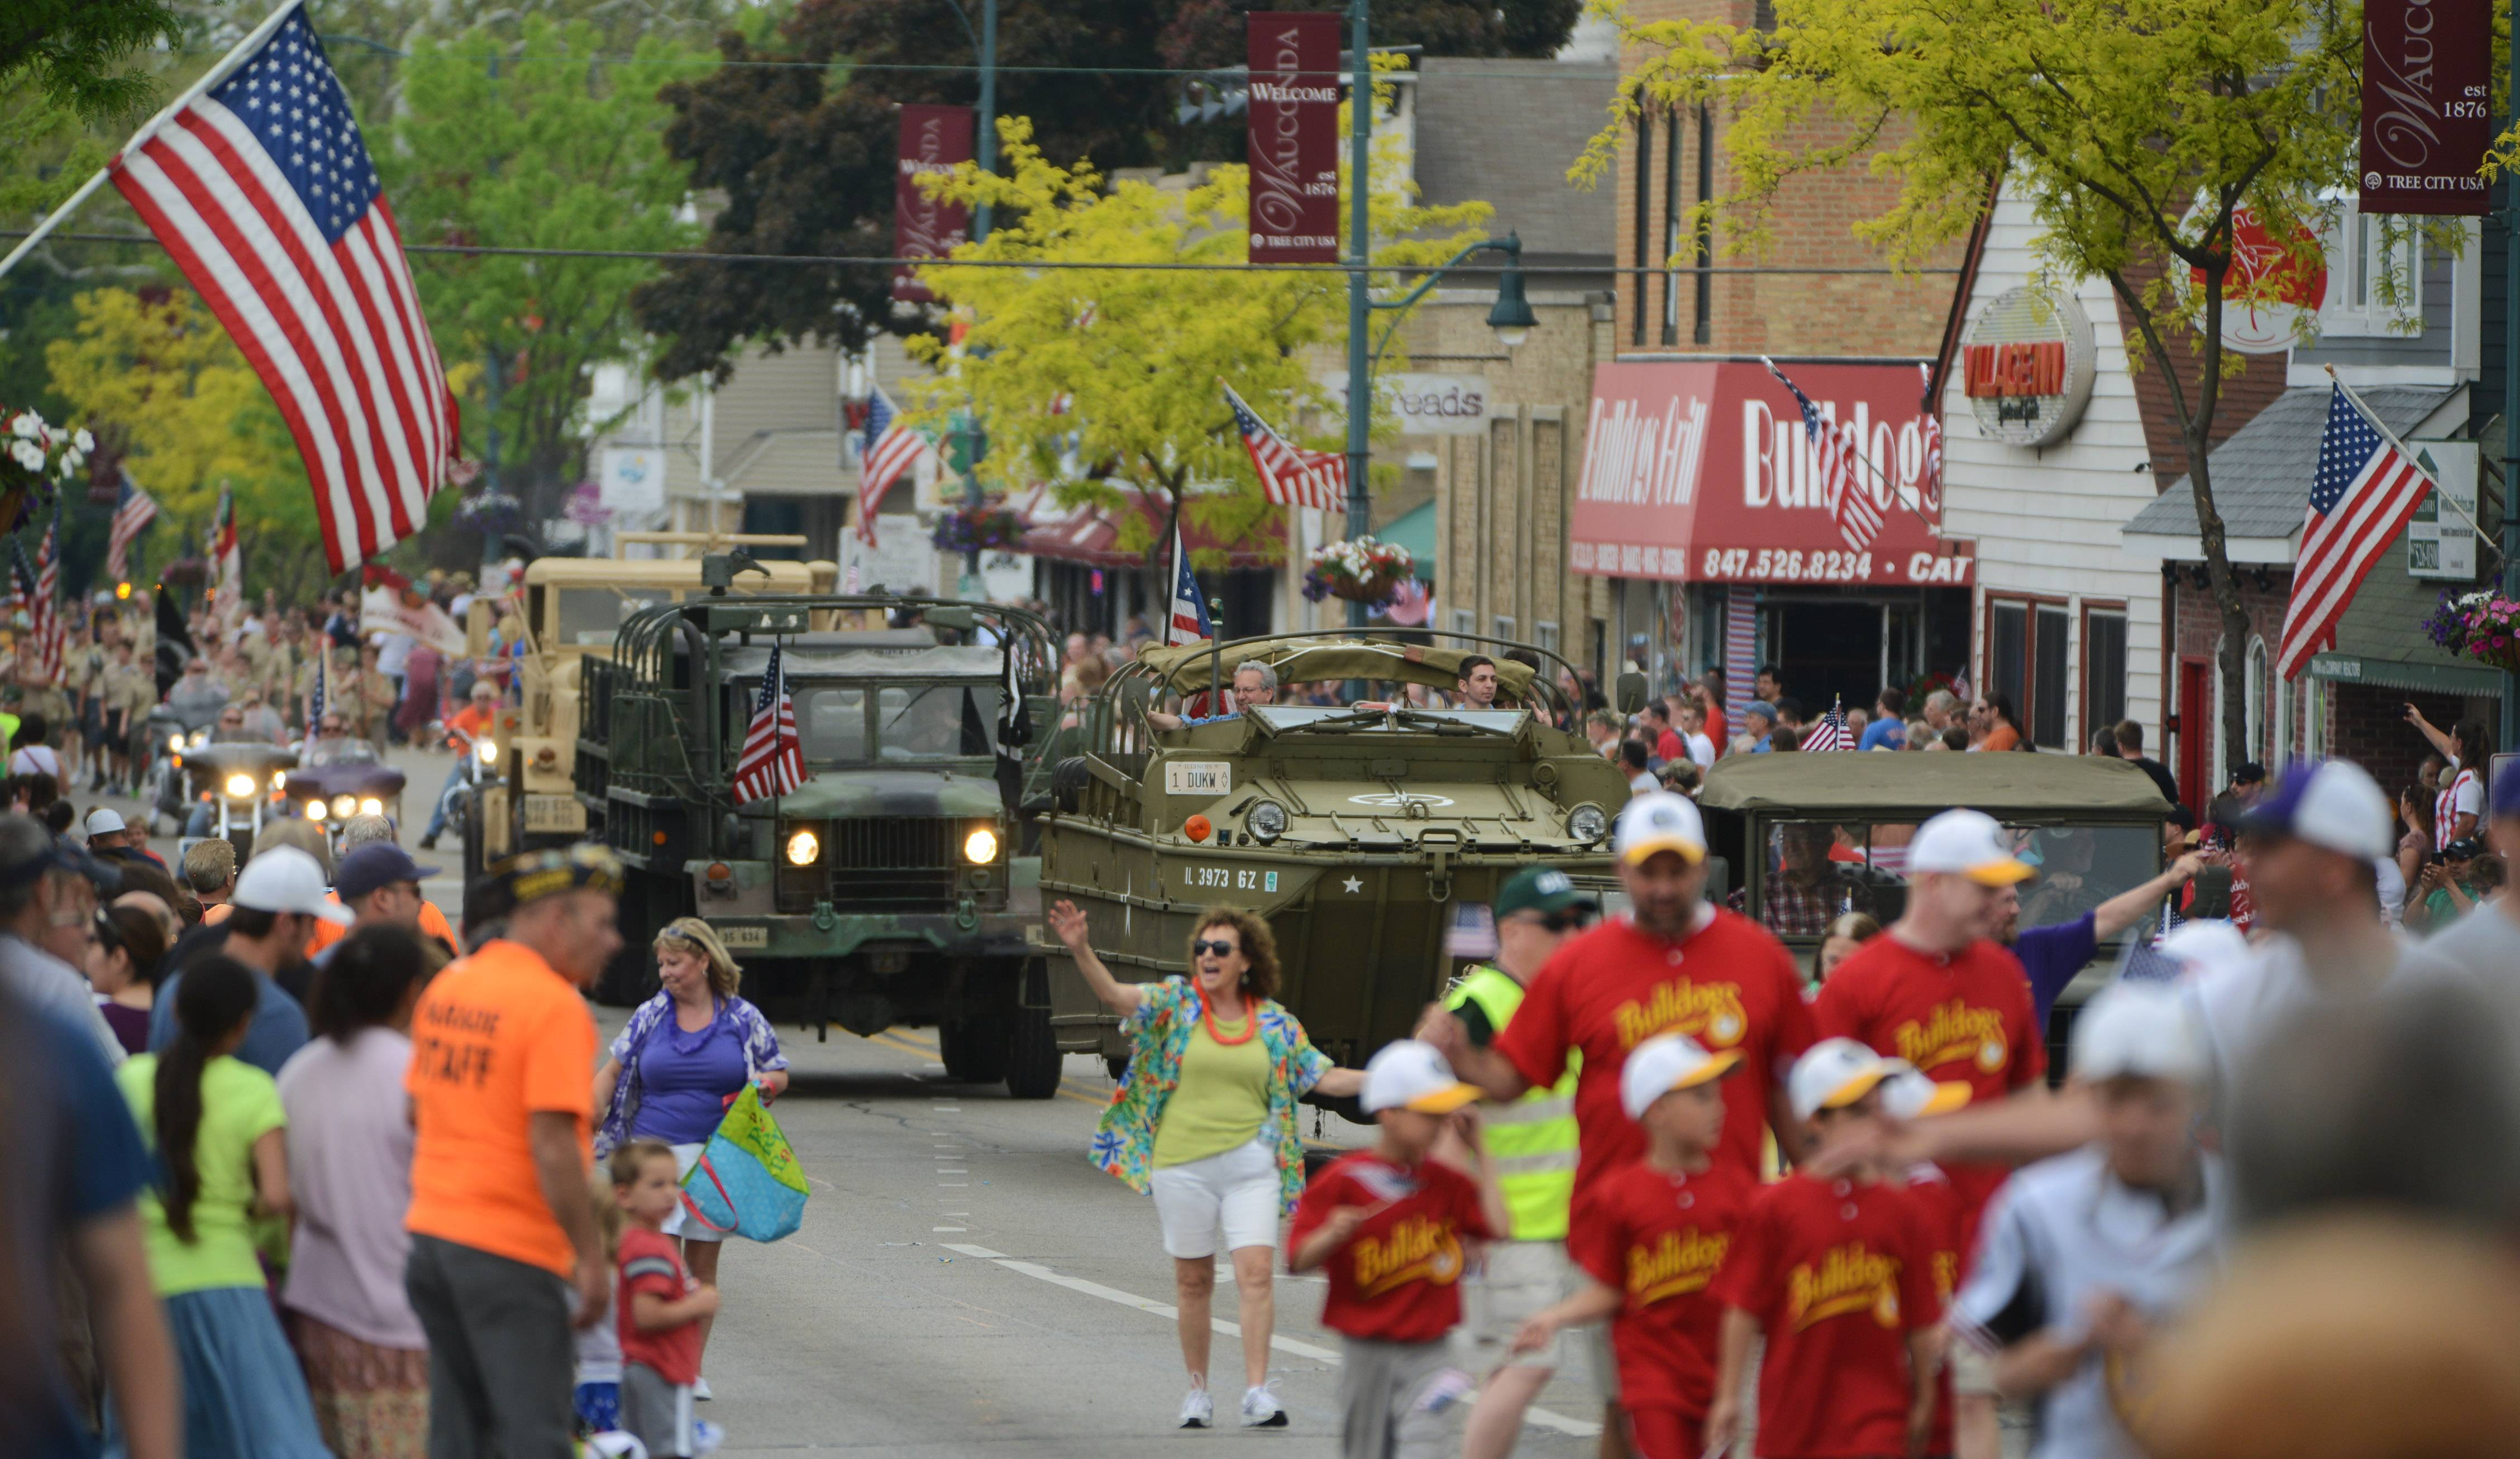 The Wauconda Memorial Day Parade makes its way south on Main Street Monday as residents gather to remember those men and women who gave their lives serving in the country's armed forces.